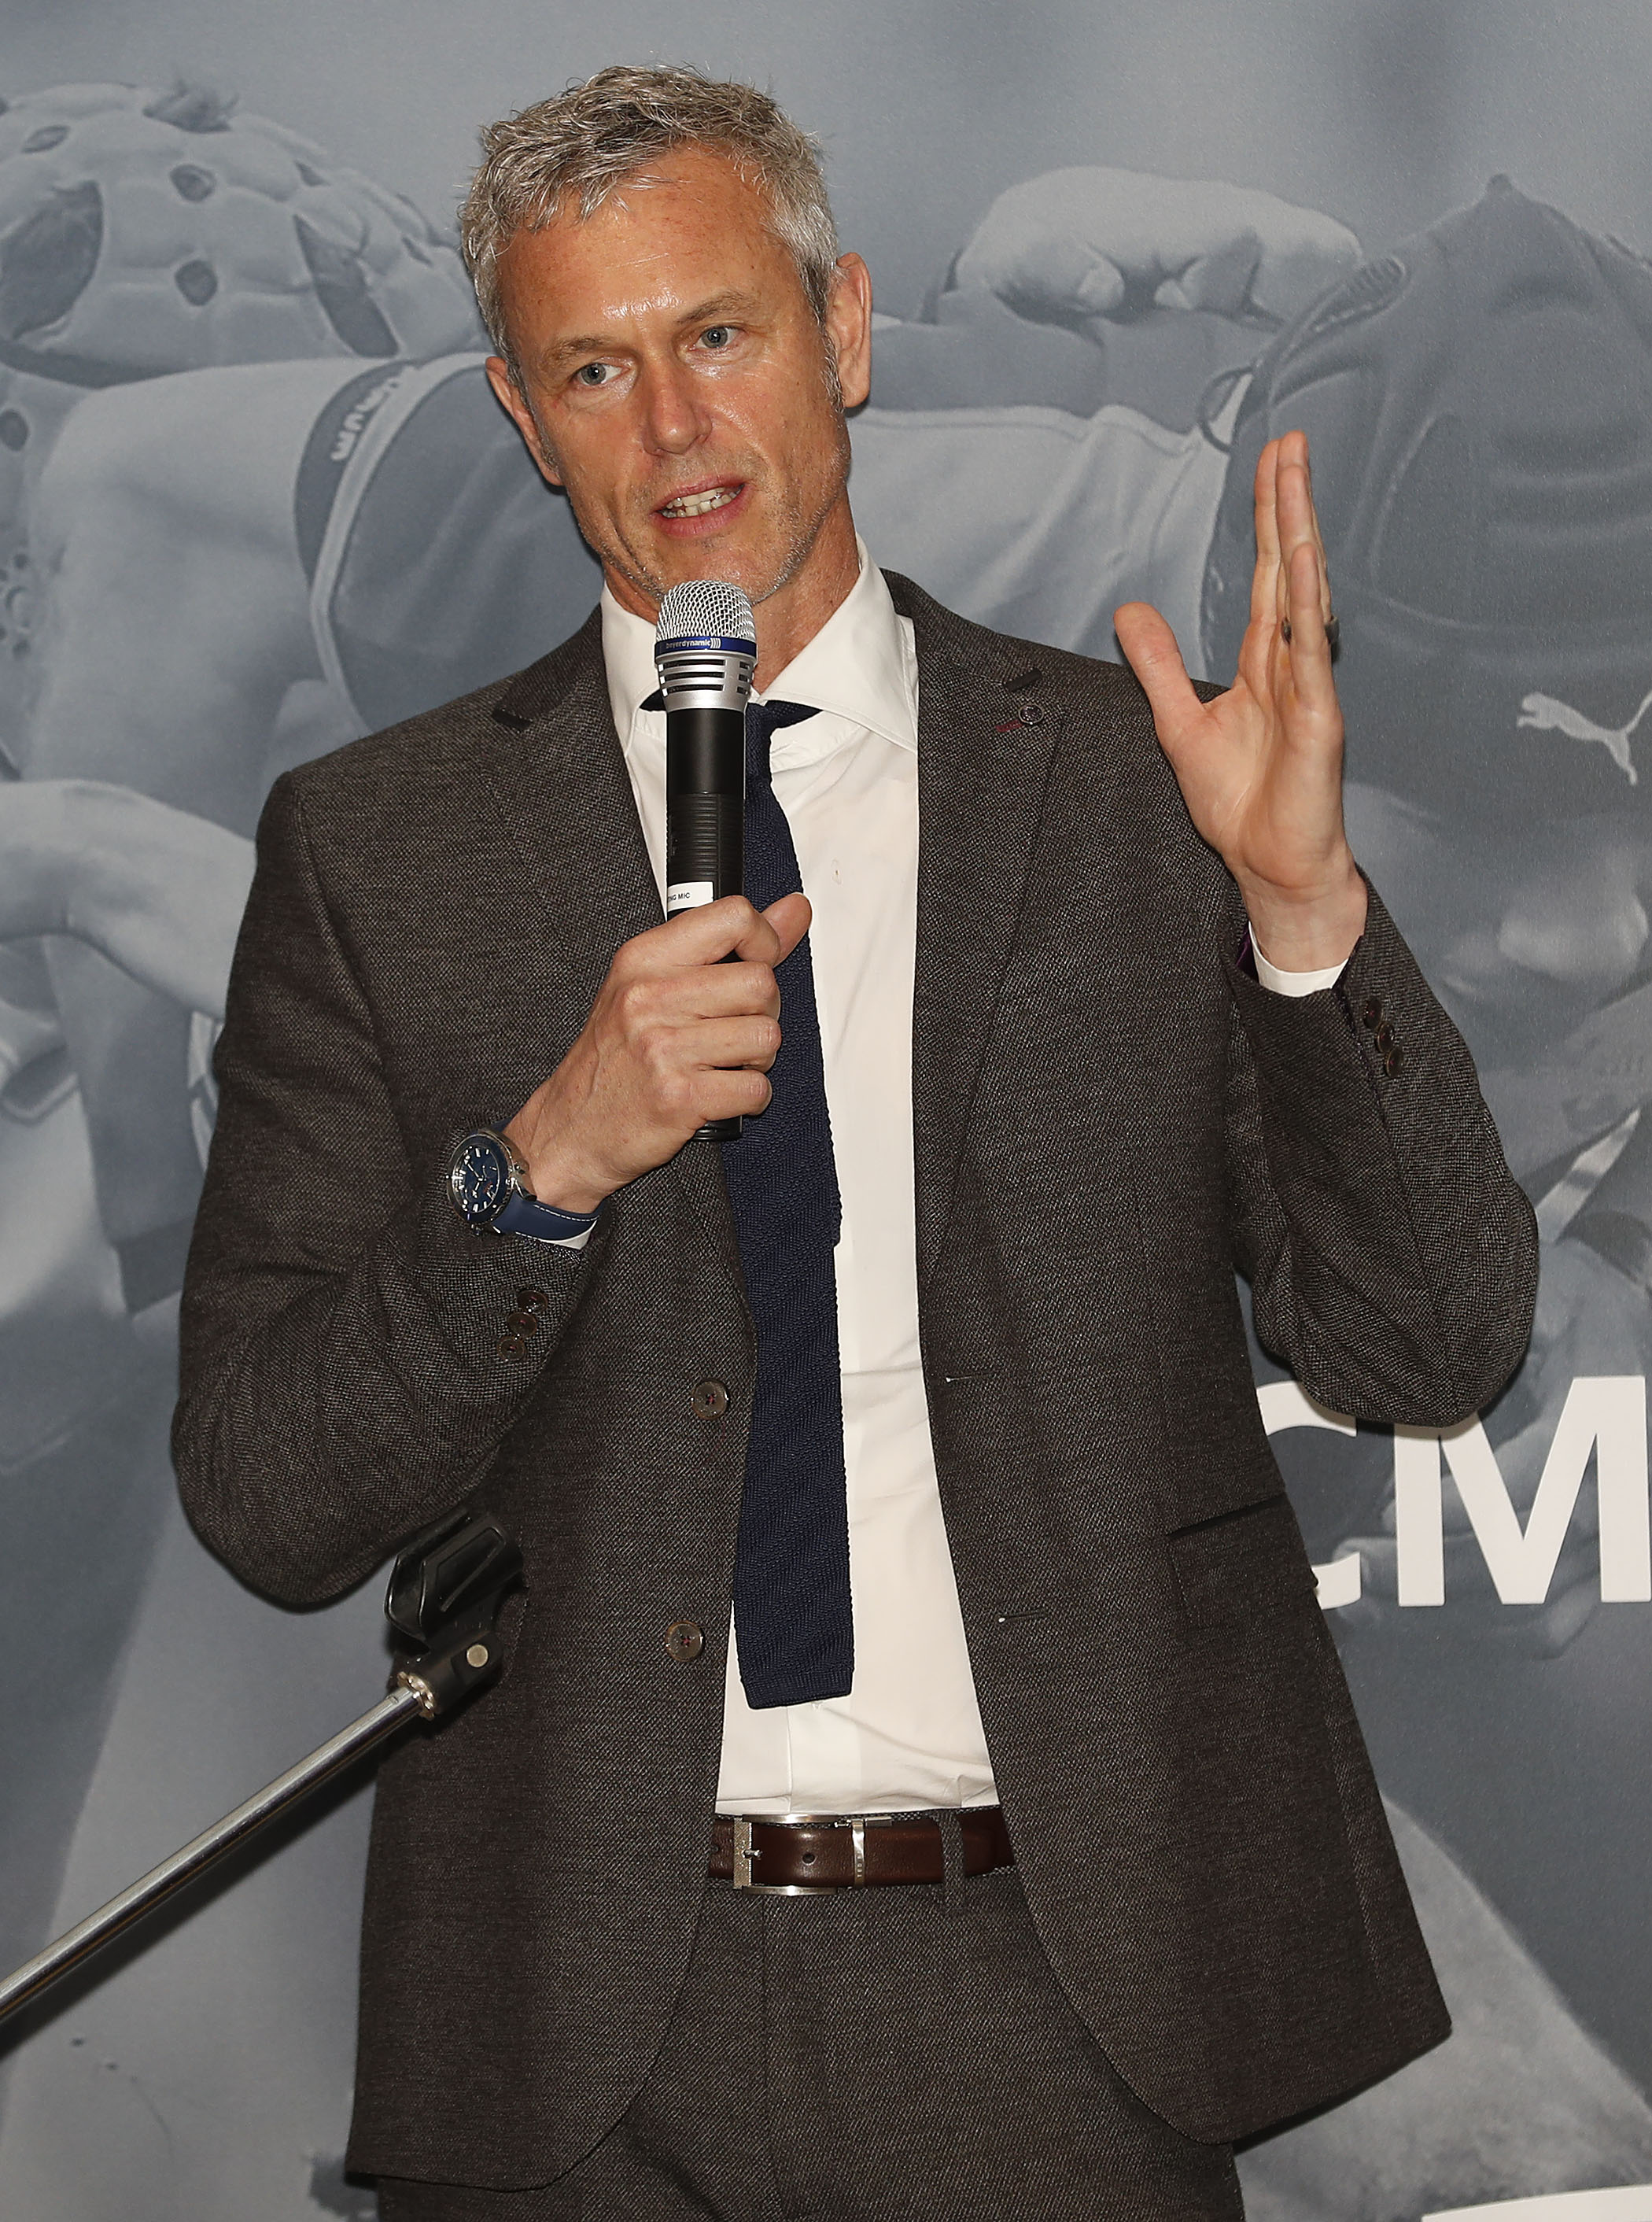 Mark Foster guest speaker during the RCMA Varsity Rugby League game between Cambridge University and Oxford University at the HAC Ground, Moorgate, London on Fri Mar 9, 2018